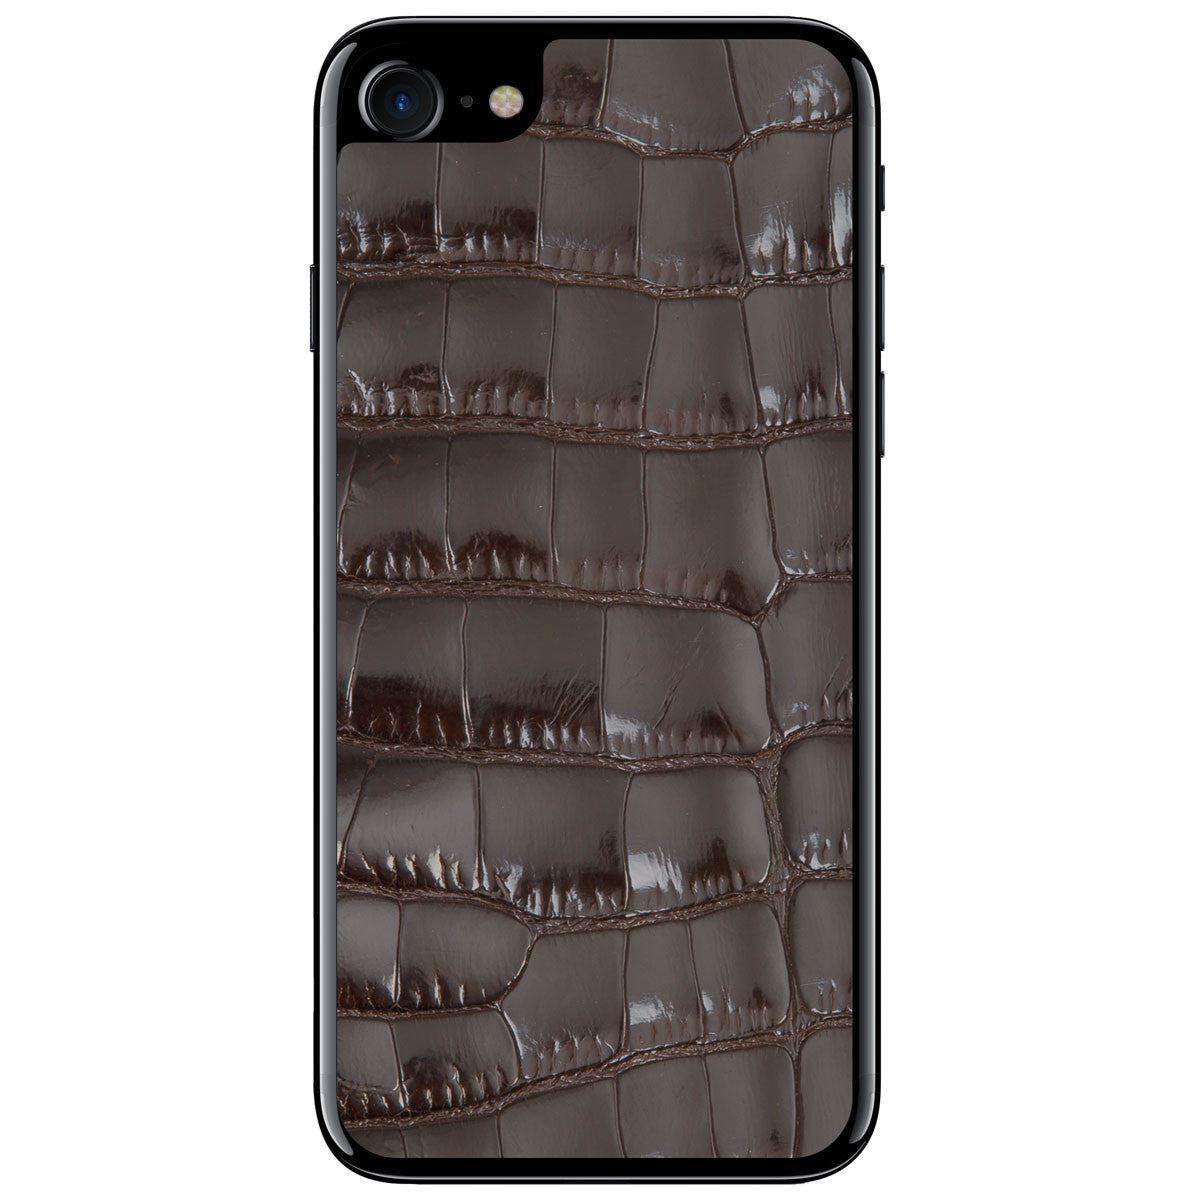 Gloss Brown Alligator iPhone 7 Leather Skin